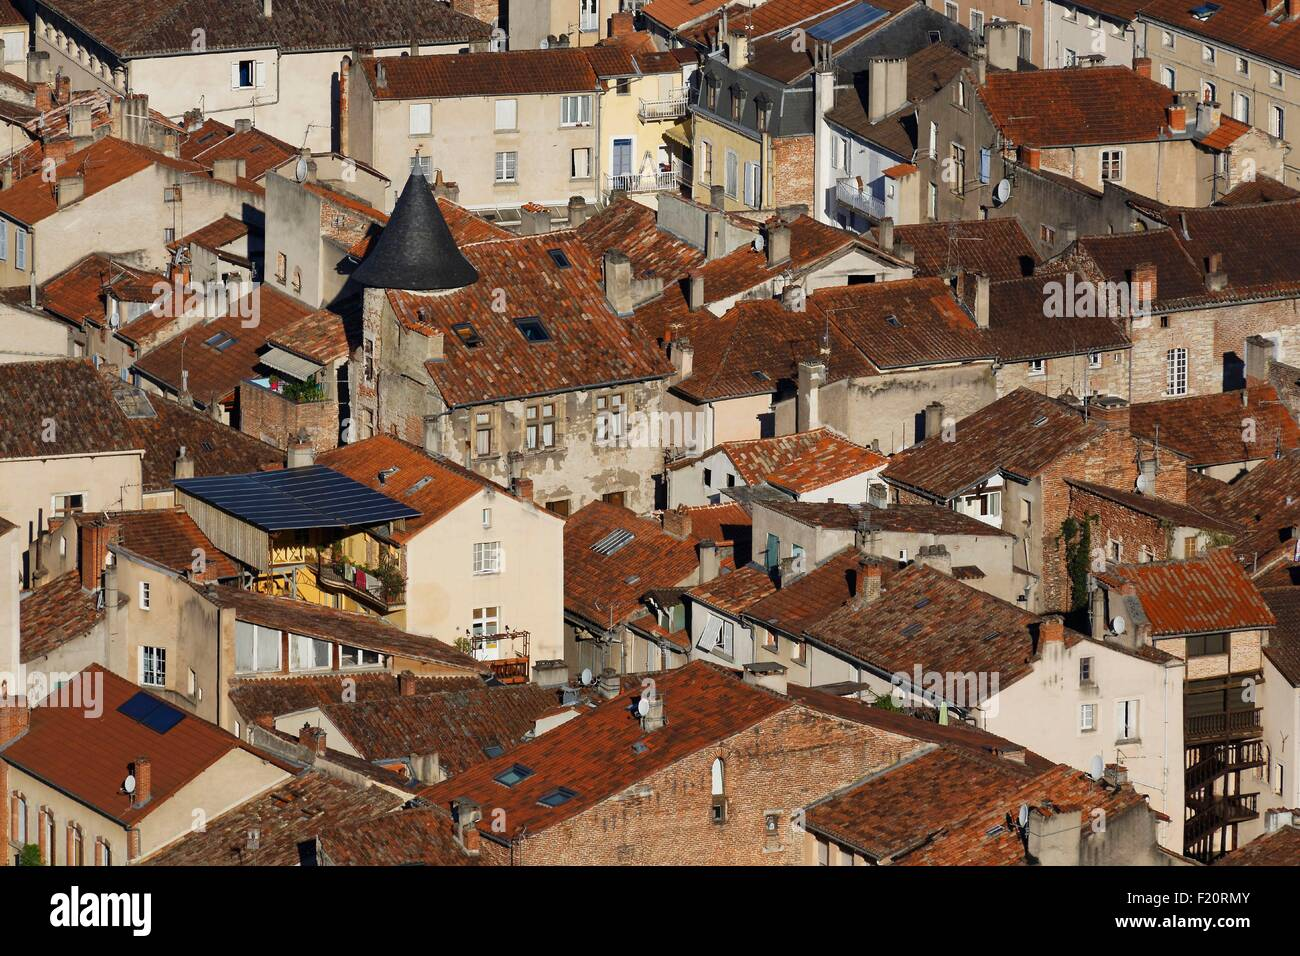 France, Lot, Bas Quercy, Cahors step on the Ways of Saint Jacques de Compostela, general view - Stock Image